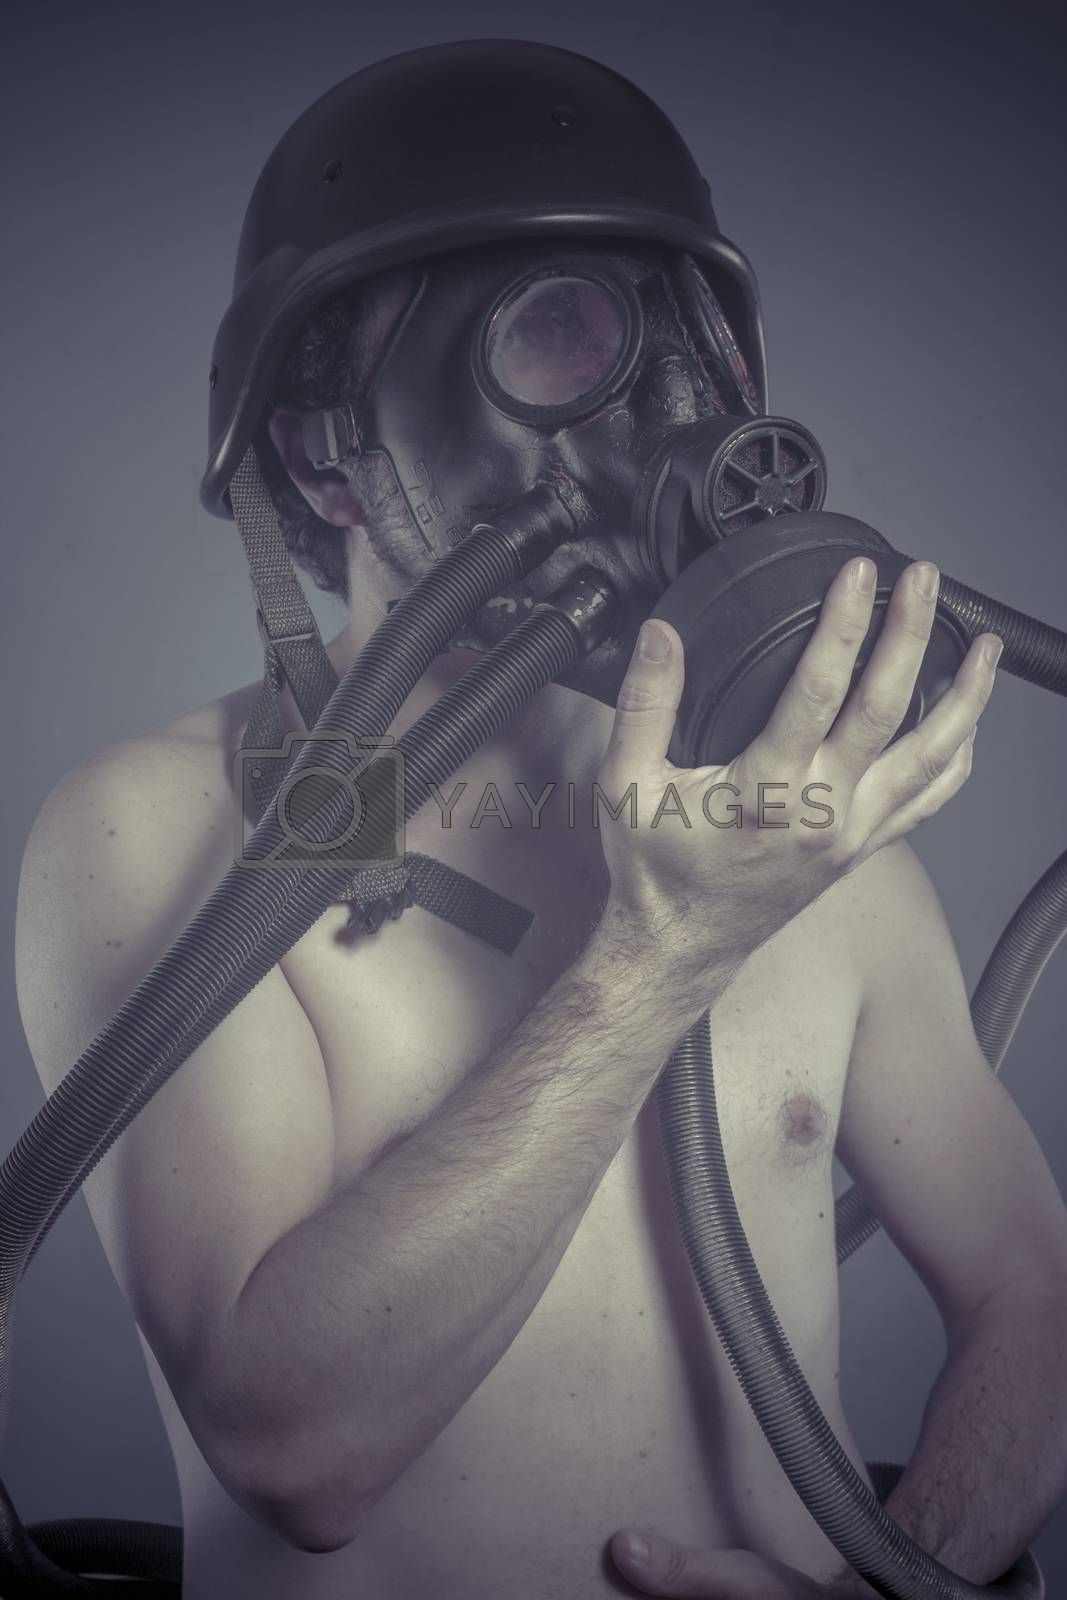 Nuclear, Man with black gas mask, pollution concept and ecological disaster